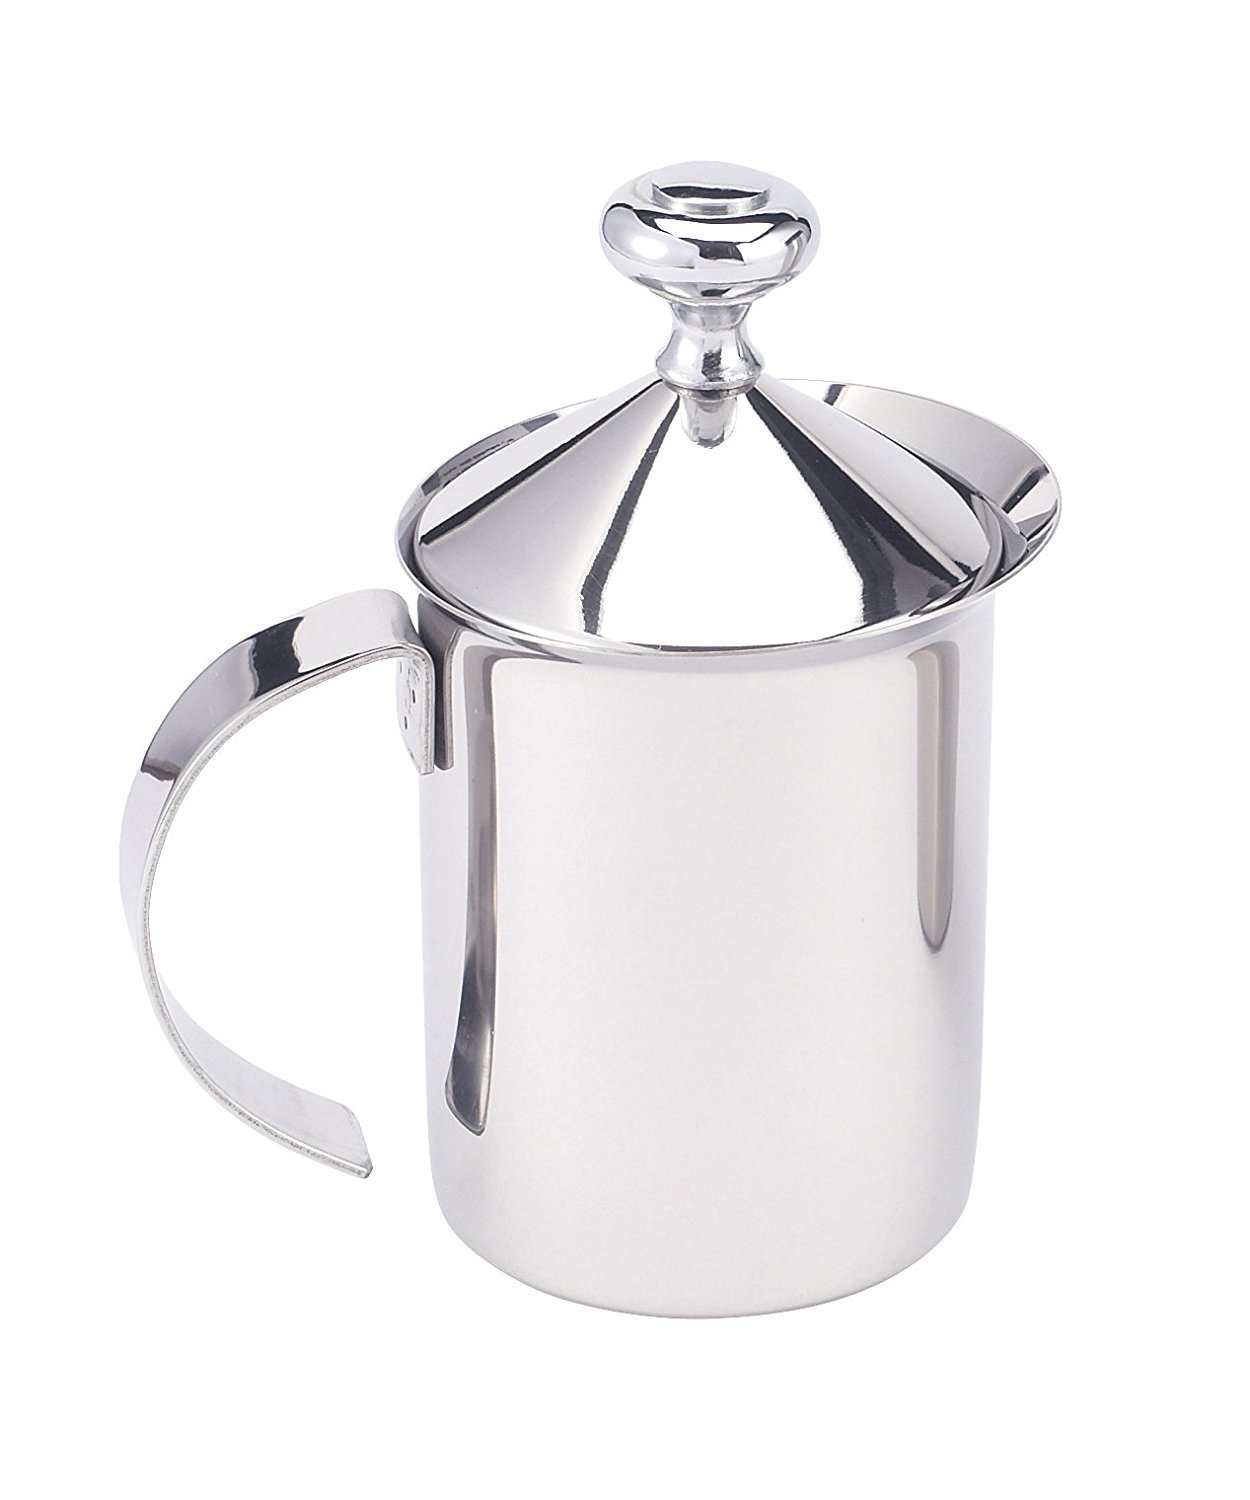 HIC Milk Creamer Frother Cappuccino Coffee Foam Pitcher with Handle and Lid, Stainless Steel, 14-Ounce Capacity